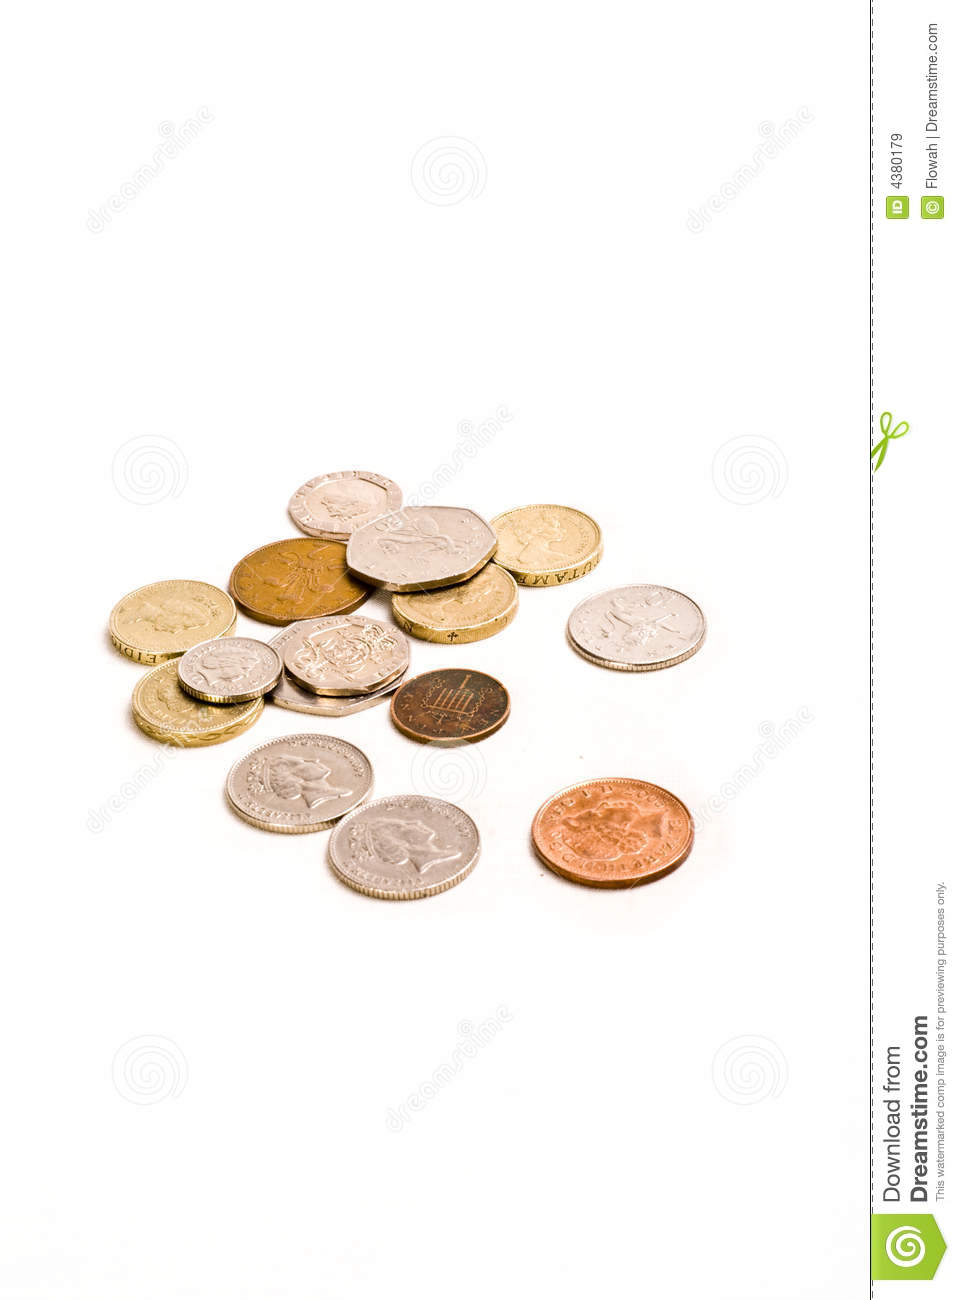 Money coins change on white background